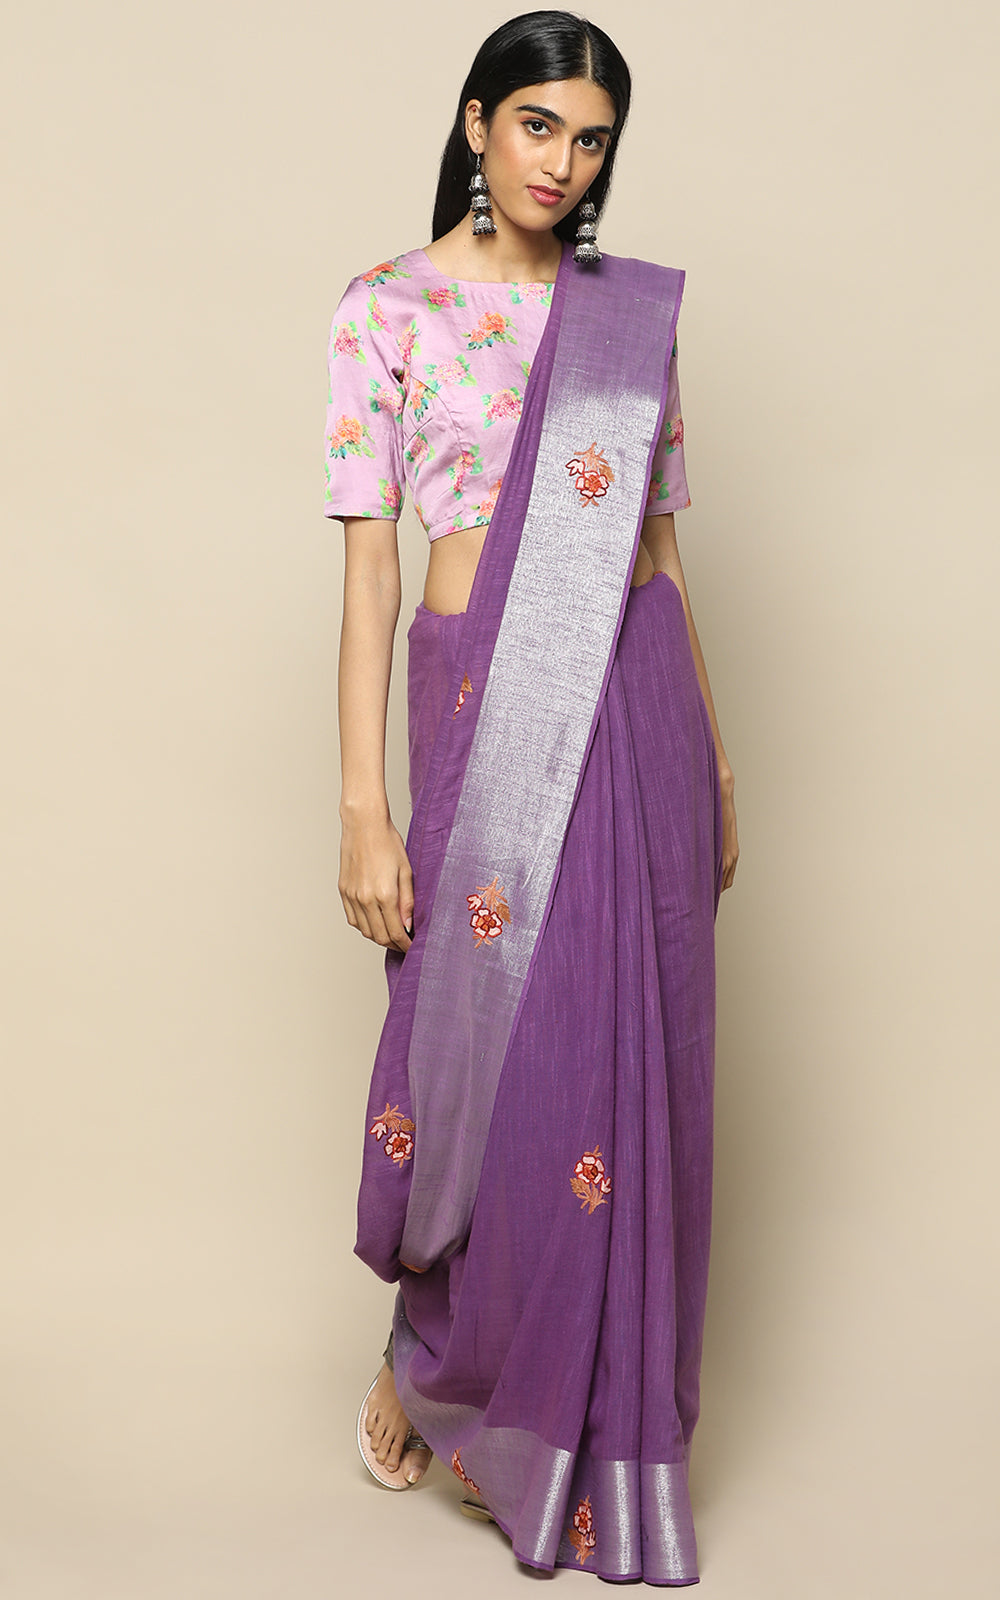 VIOLET KHADI SAREE WITH KASHMIRI HAND EMBROIDERY